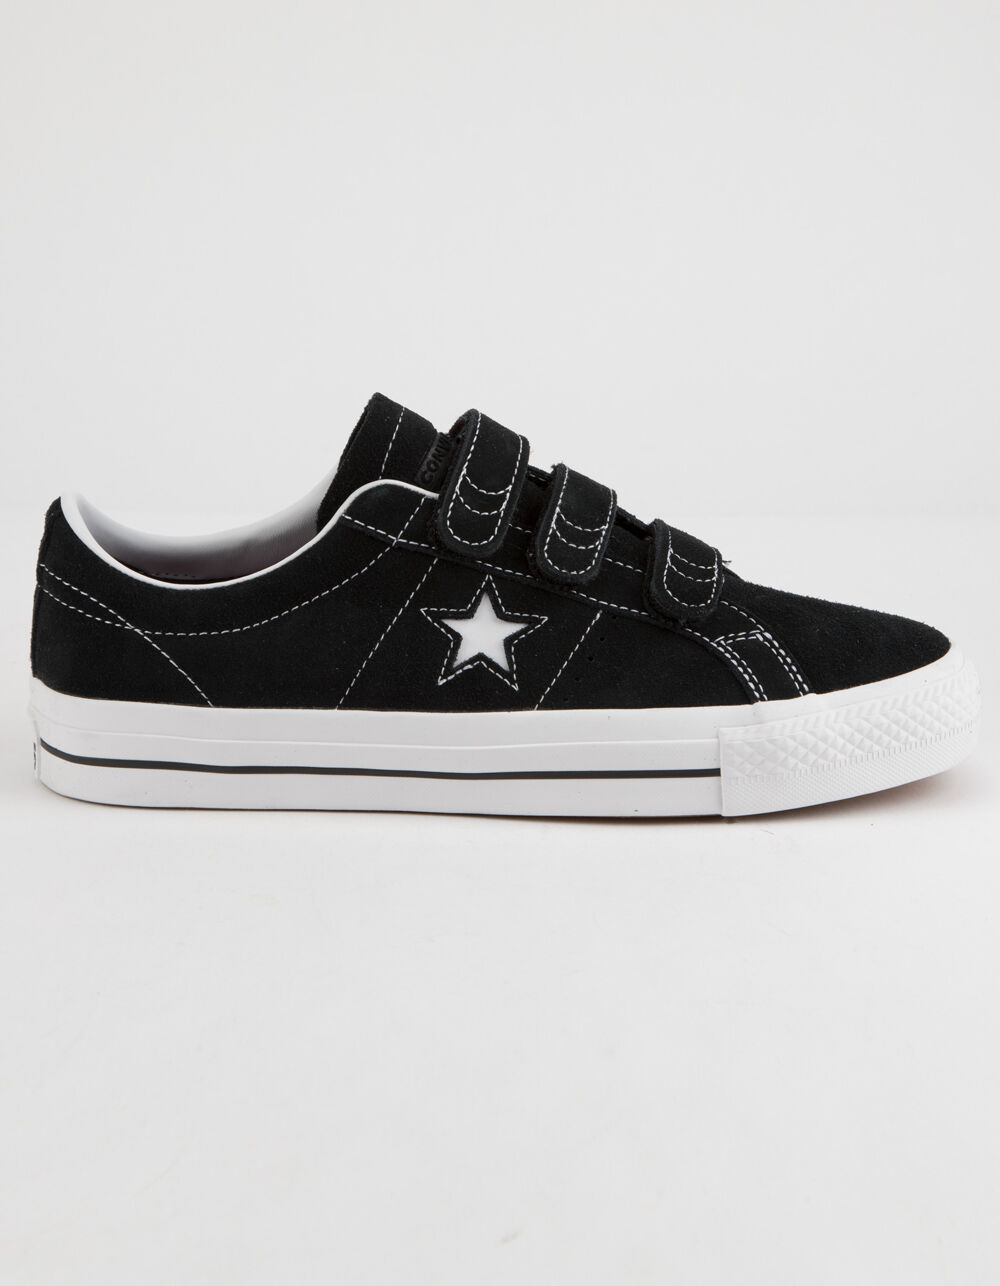 CONVERSE One Star Pro 3v Ox Black & White Shoes